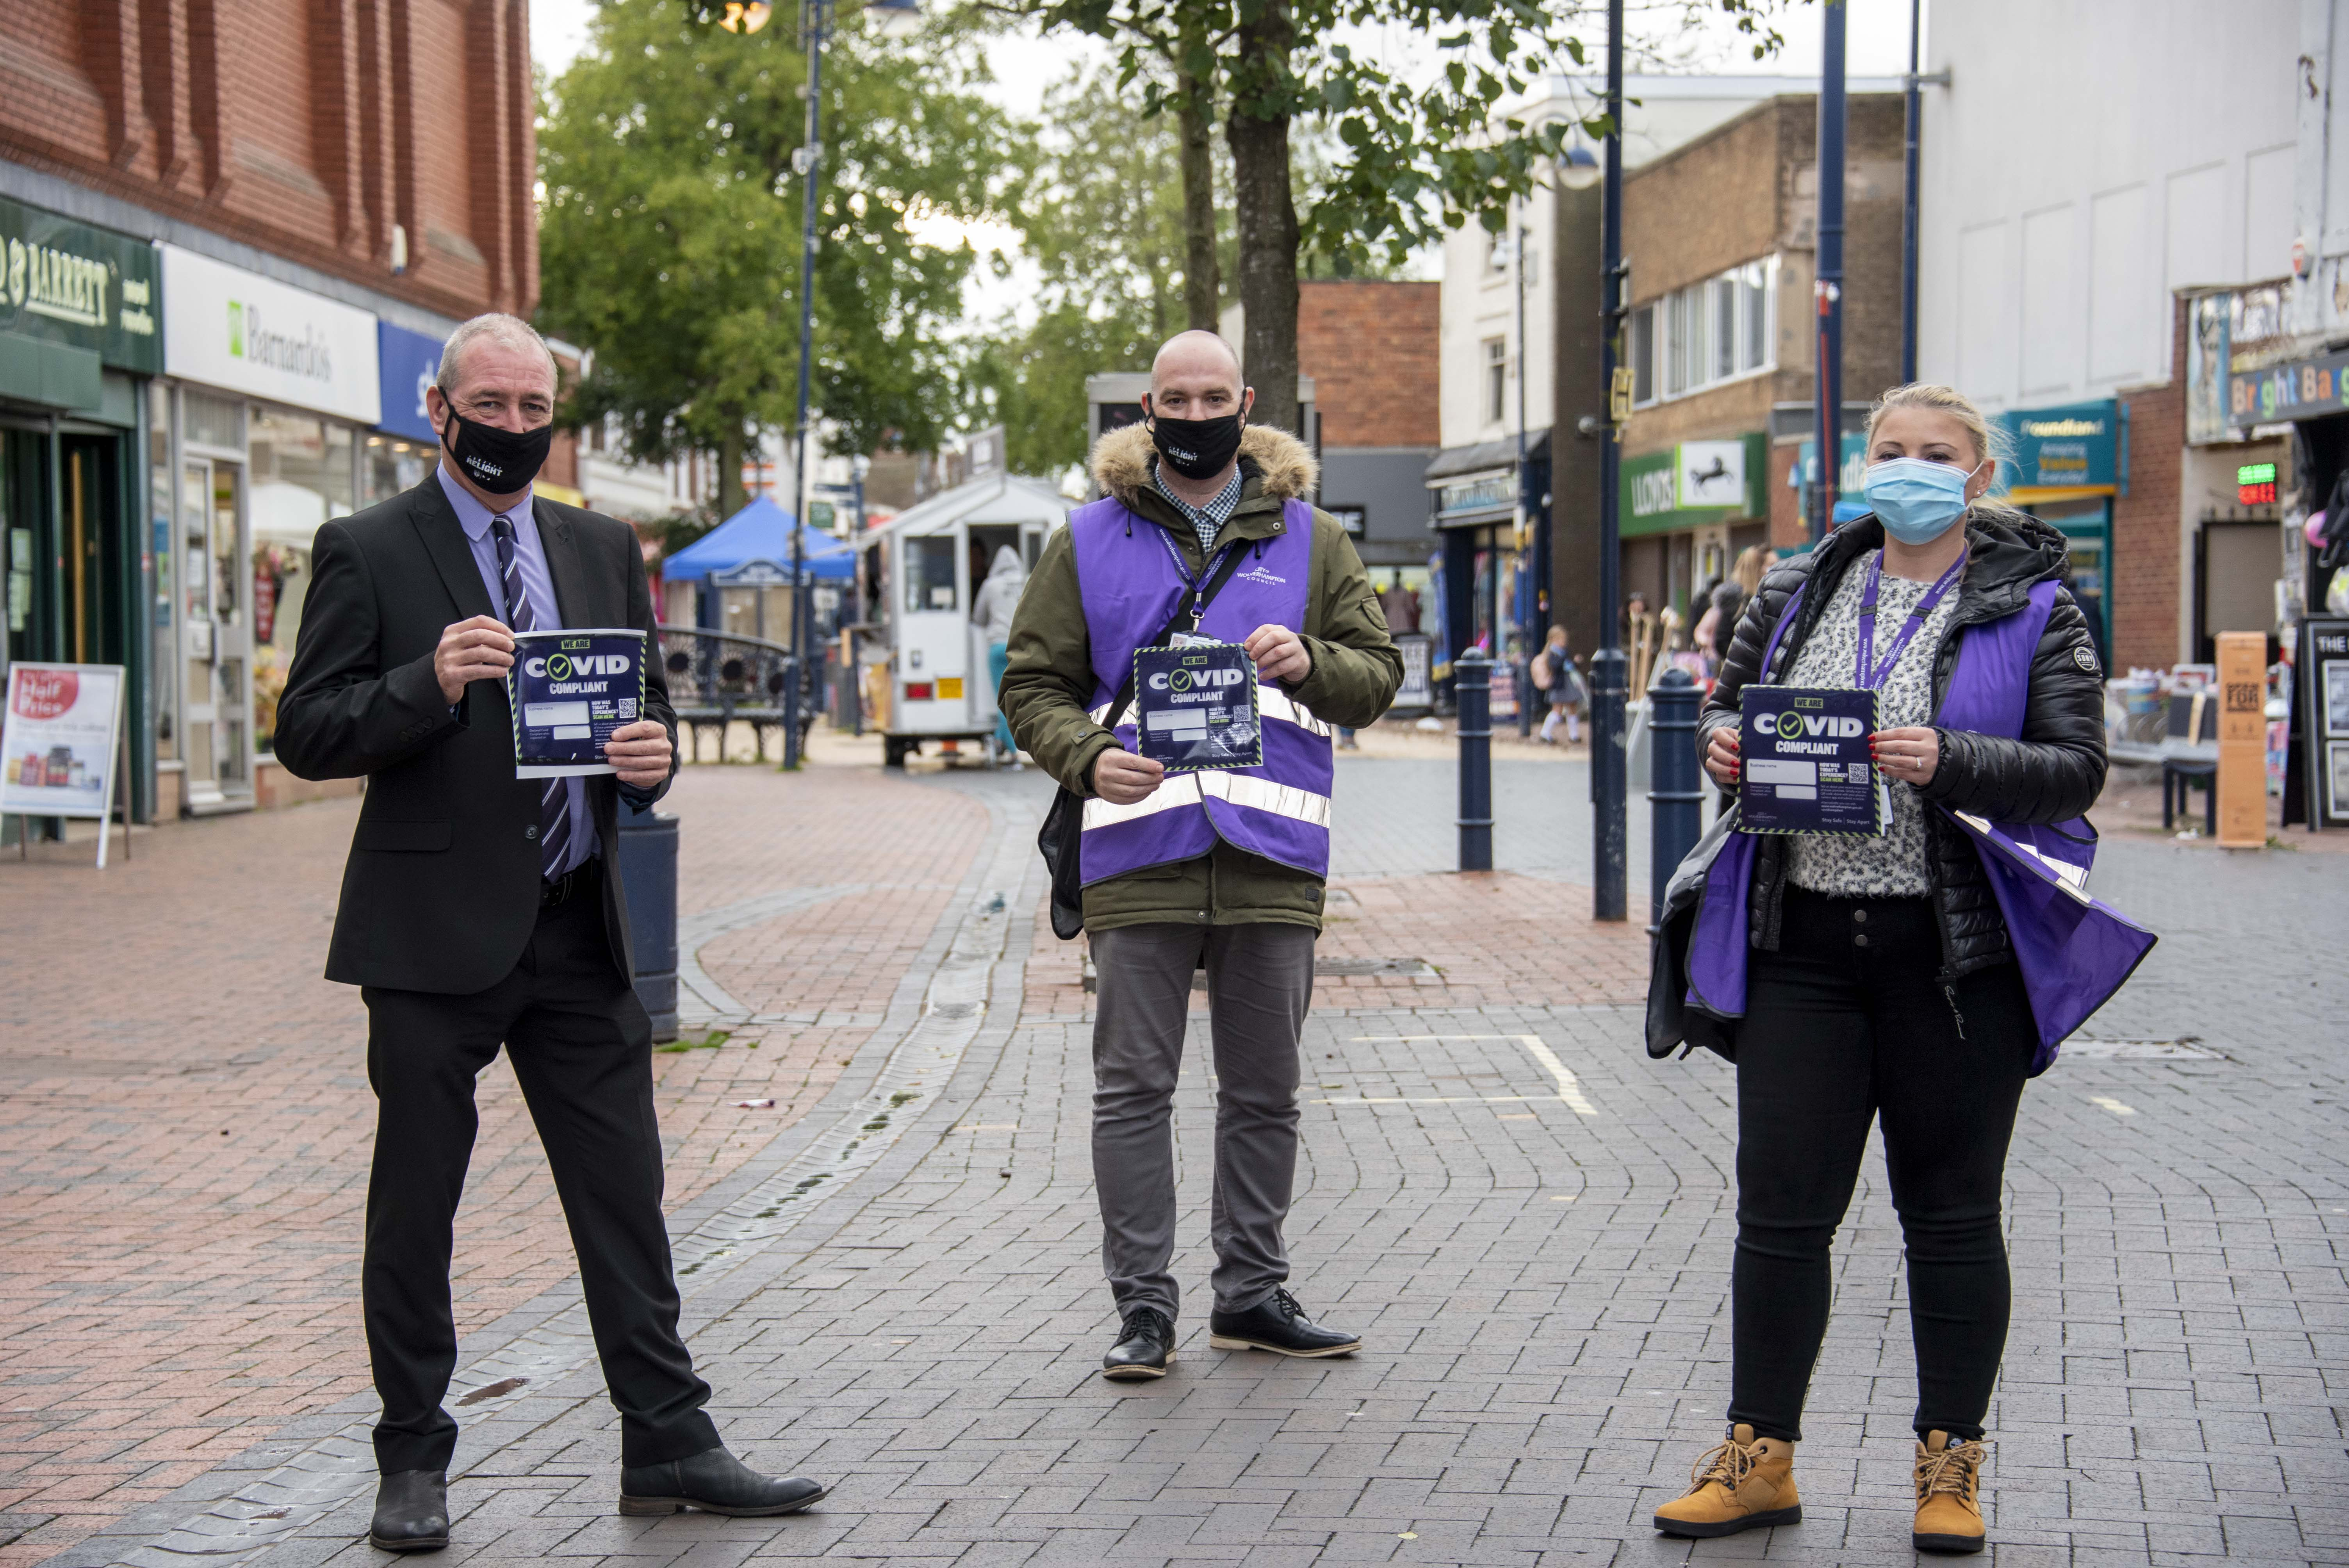 Covid Support Advisors Take to the Streets of Wolverhampton